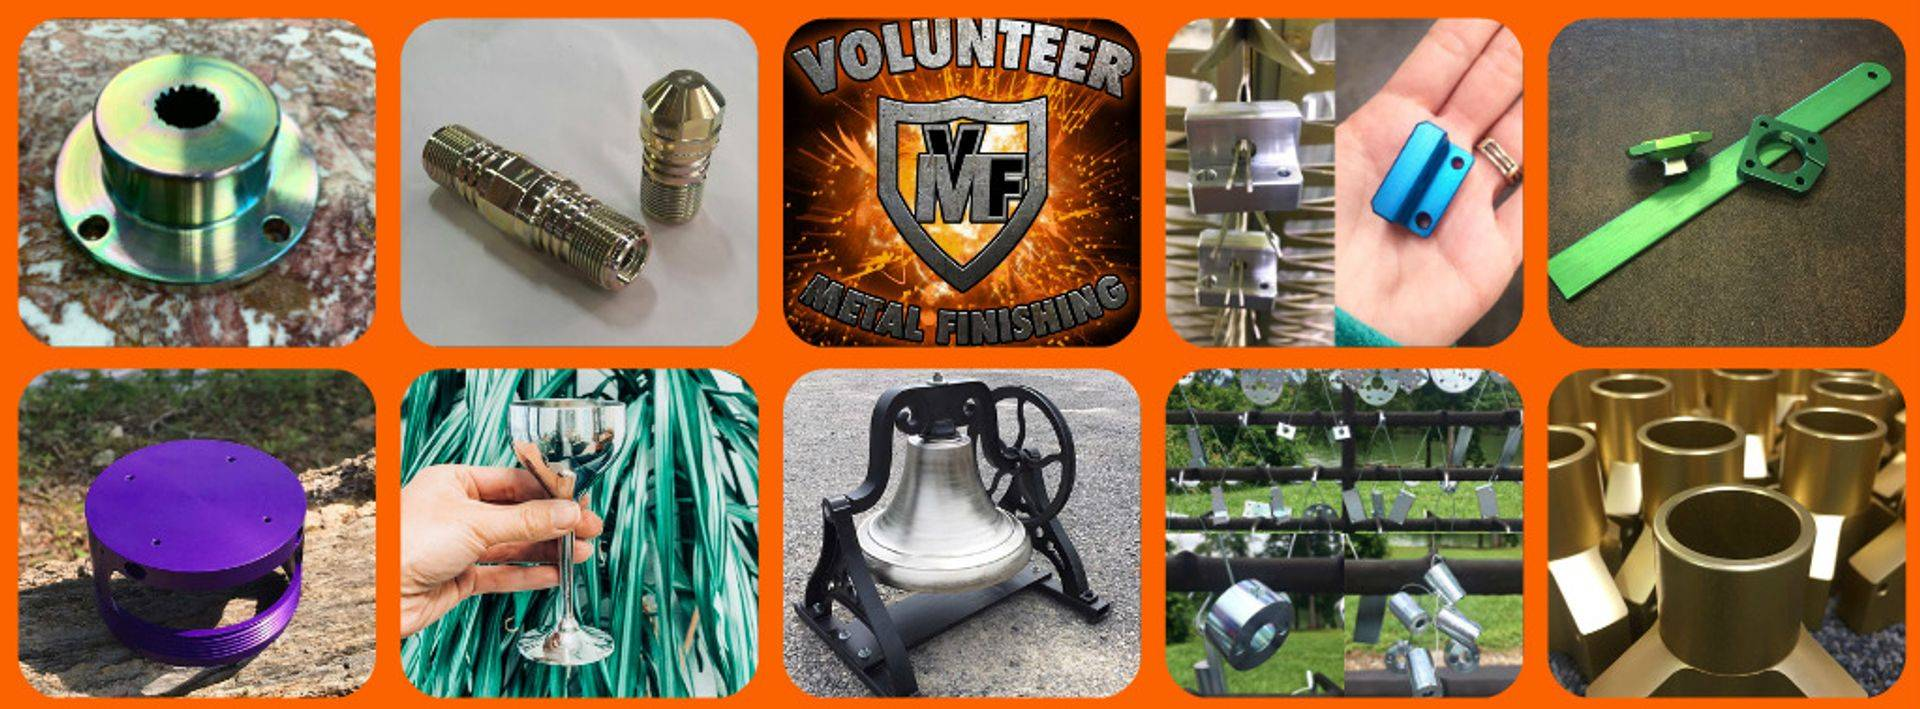 Volunteer Metals Powder Coating